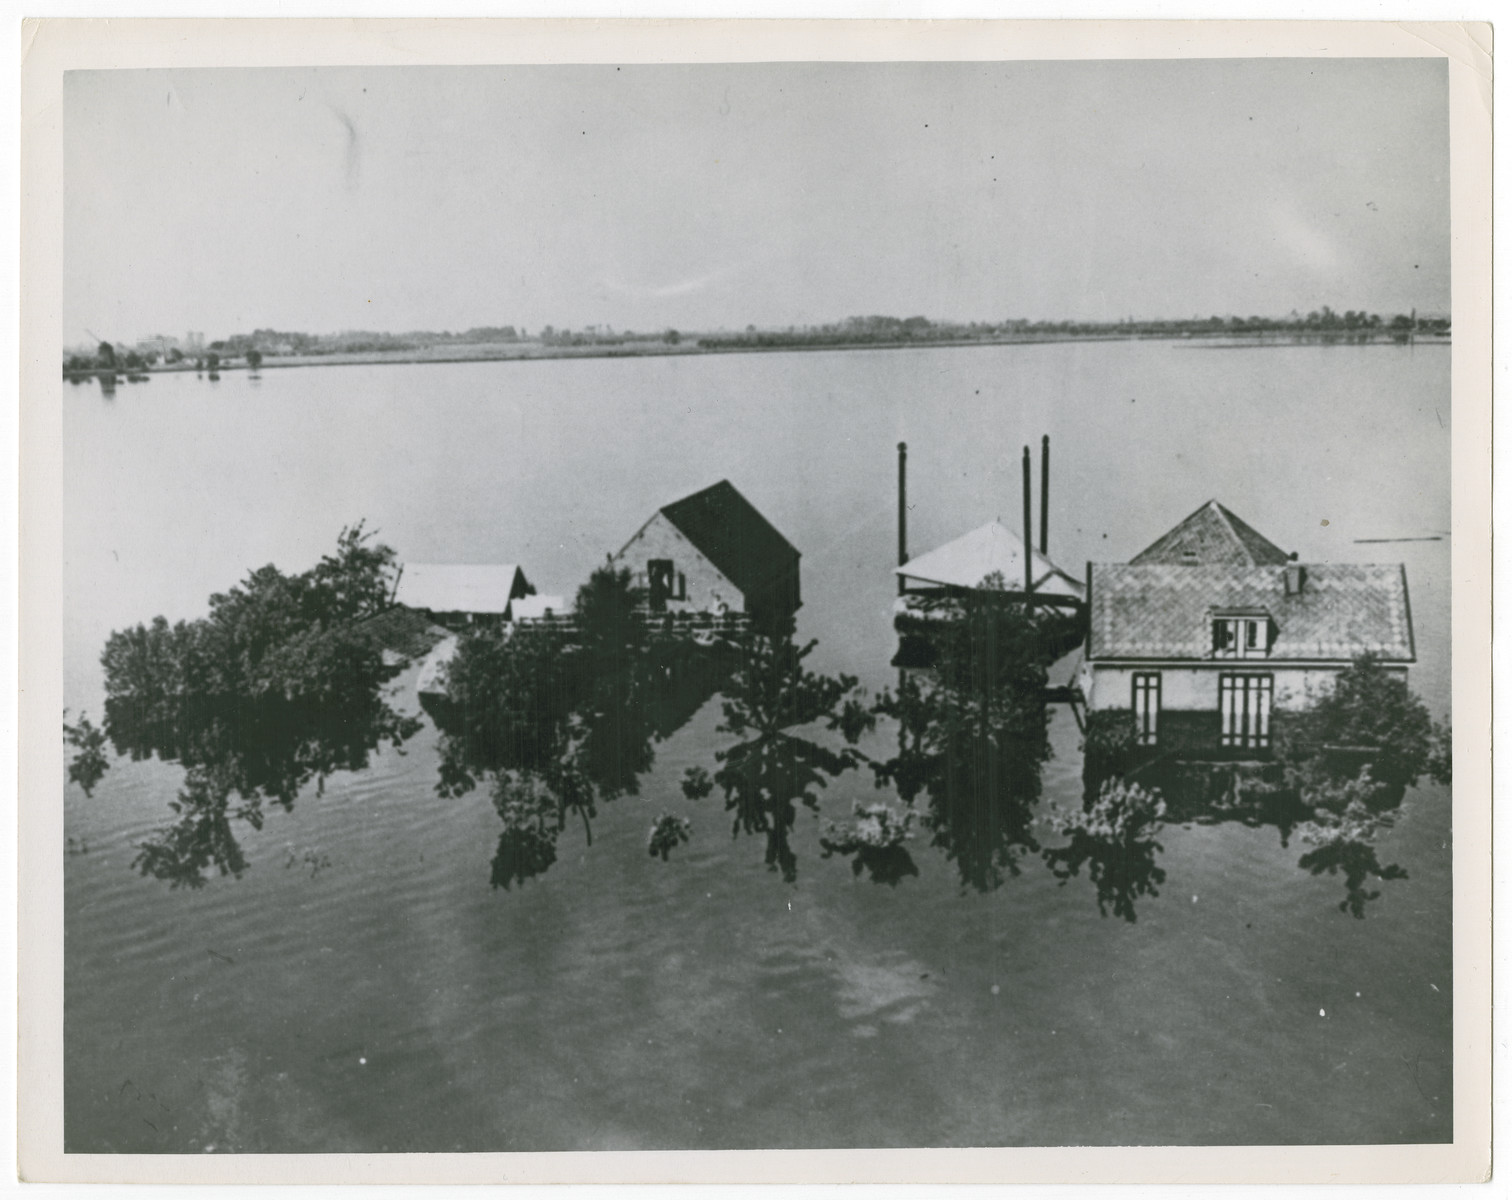 "An aerial view of flooded areas around the small town of Oud-Loosdrecht, Holland.  Original caption reads:  ""Twelve hundred persons died of starvation in Amsterdam, Holland, when the Germans destroyed the country's dikes and flooded Dutch farms with sea water.  Before the Allies liberated the Low Countries, American Military authorities sent more than 2150 B-17 Flying Fortresses to drop 2500 tons of food to the starving population.  When the Germans were pushed back land vehicles and ships rushed food to Holland reducing and finally checking the deaths.  This is an airview of flooded areas around the small town of Oud-Loosdrecht, Holland""."